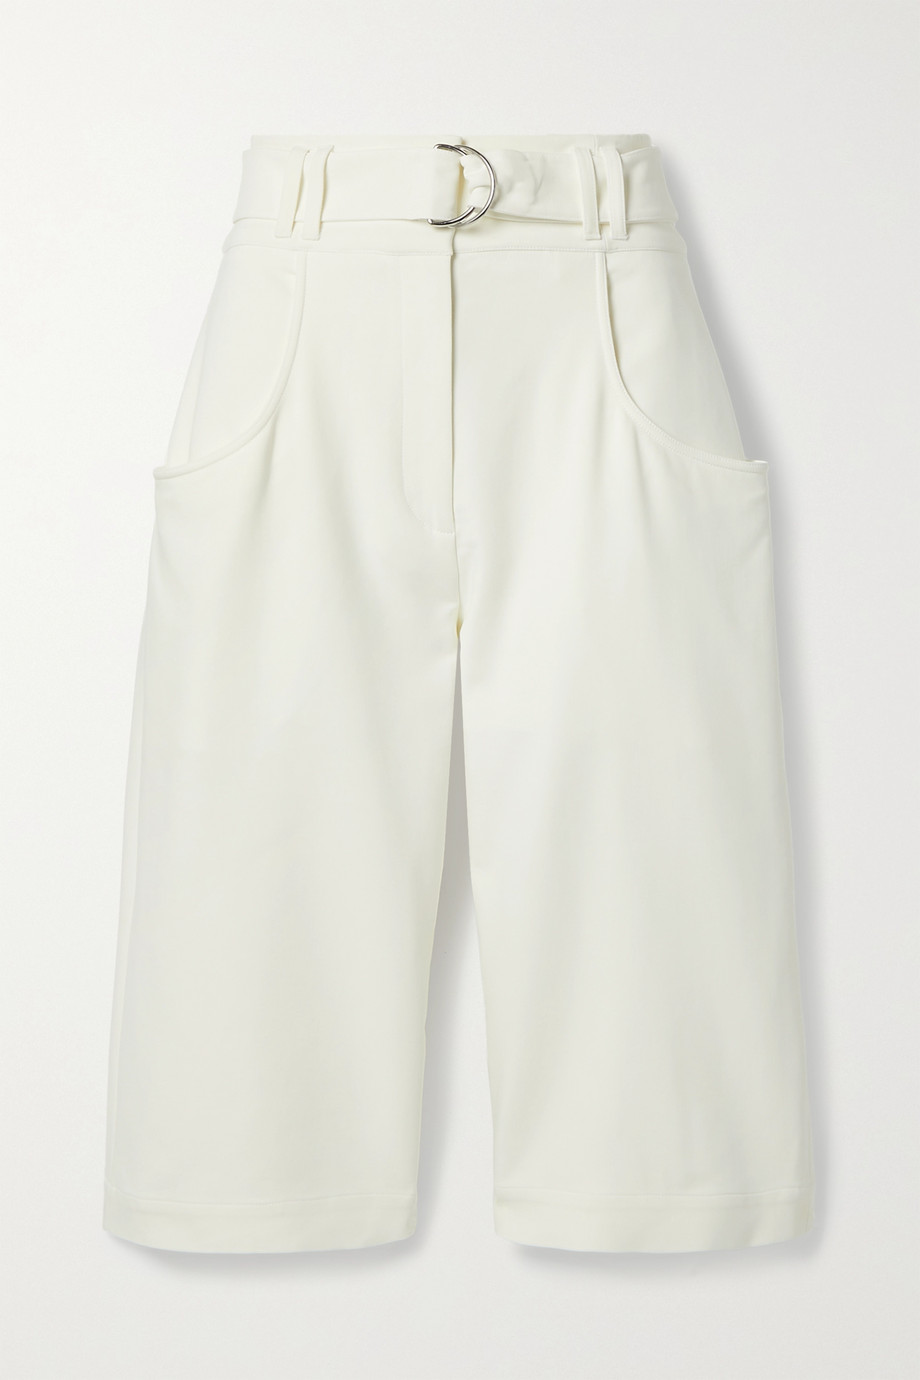 Proenza Schouler Belted crepe shorts